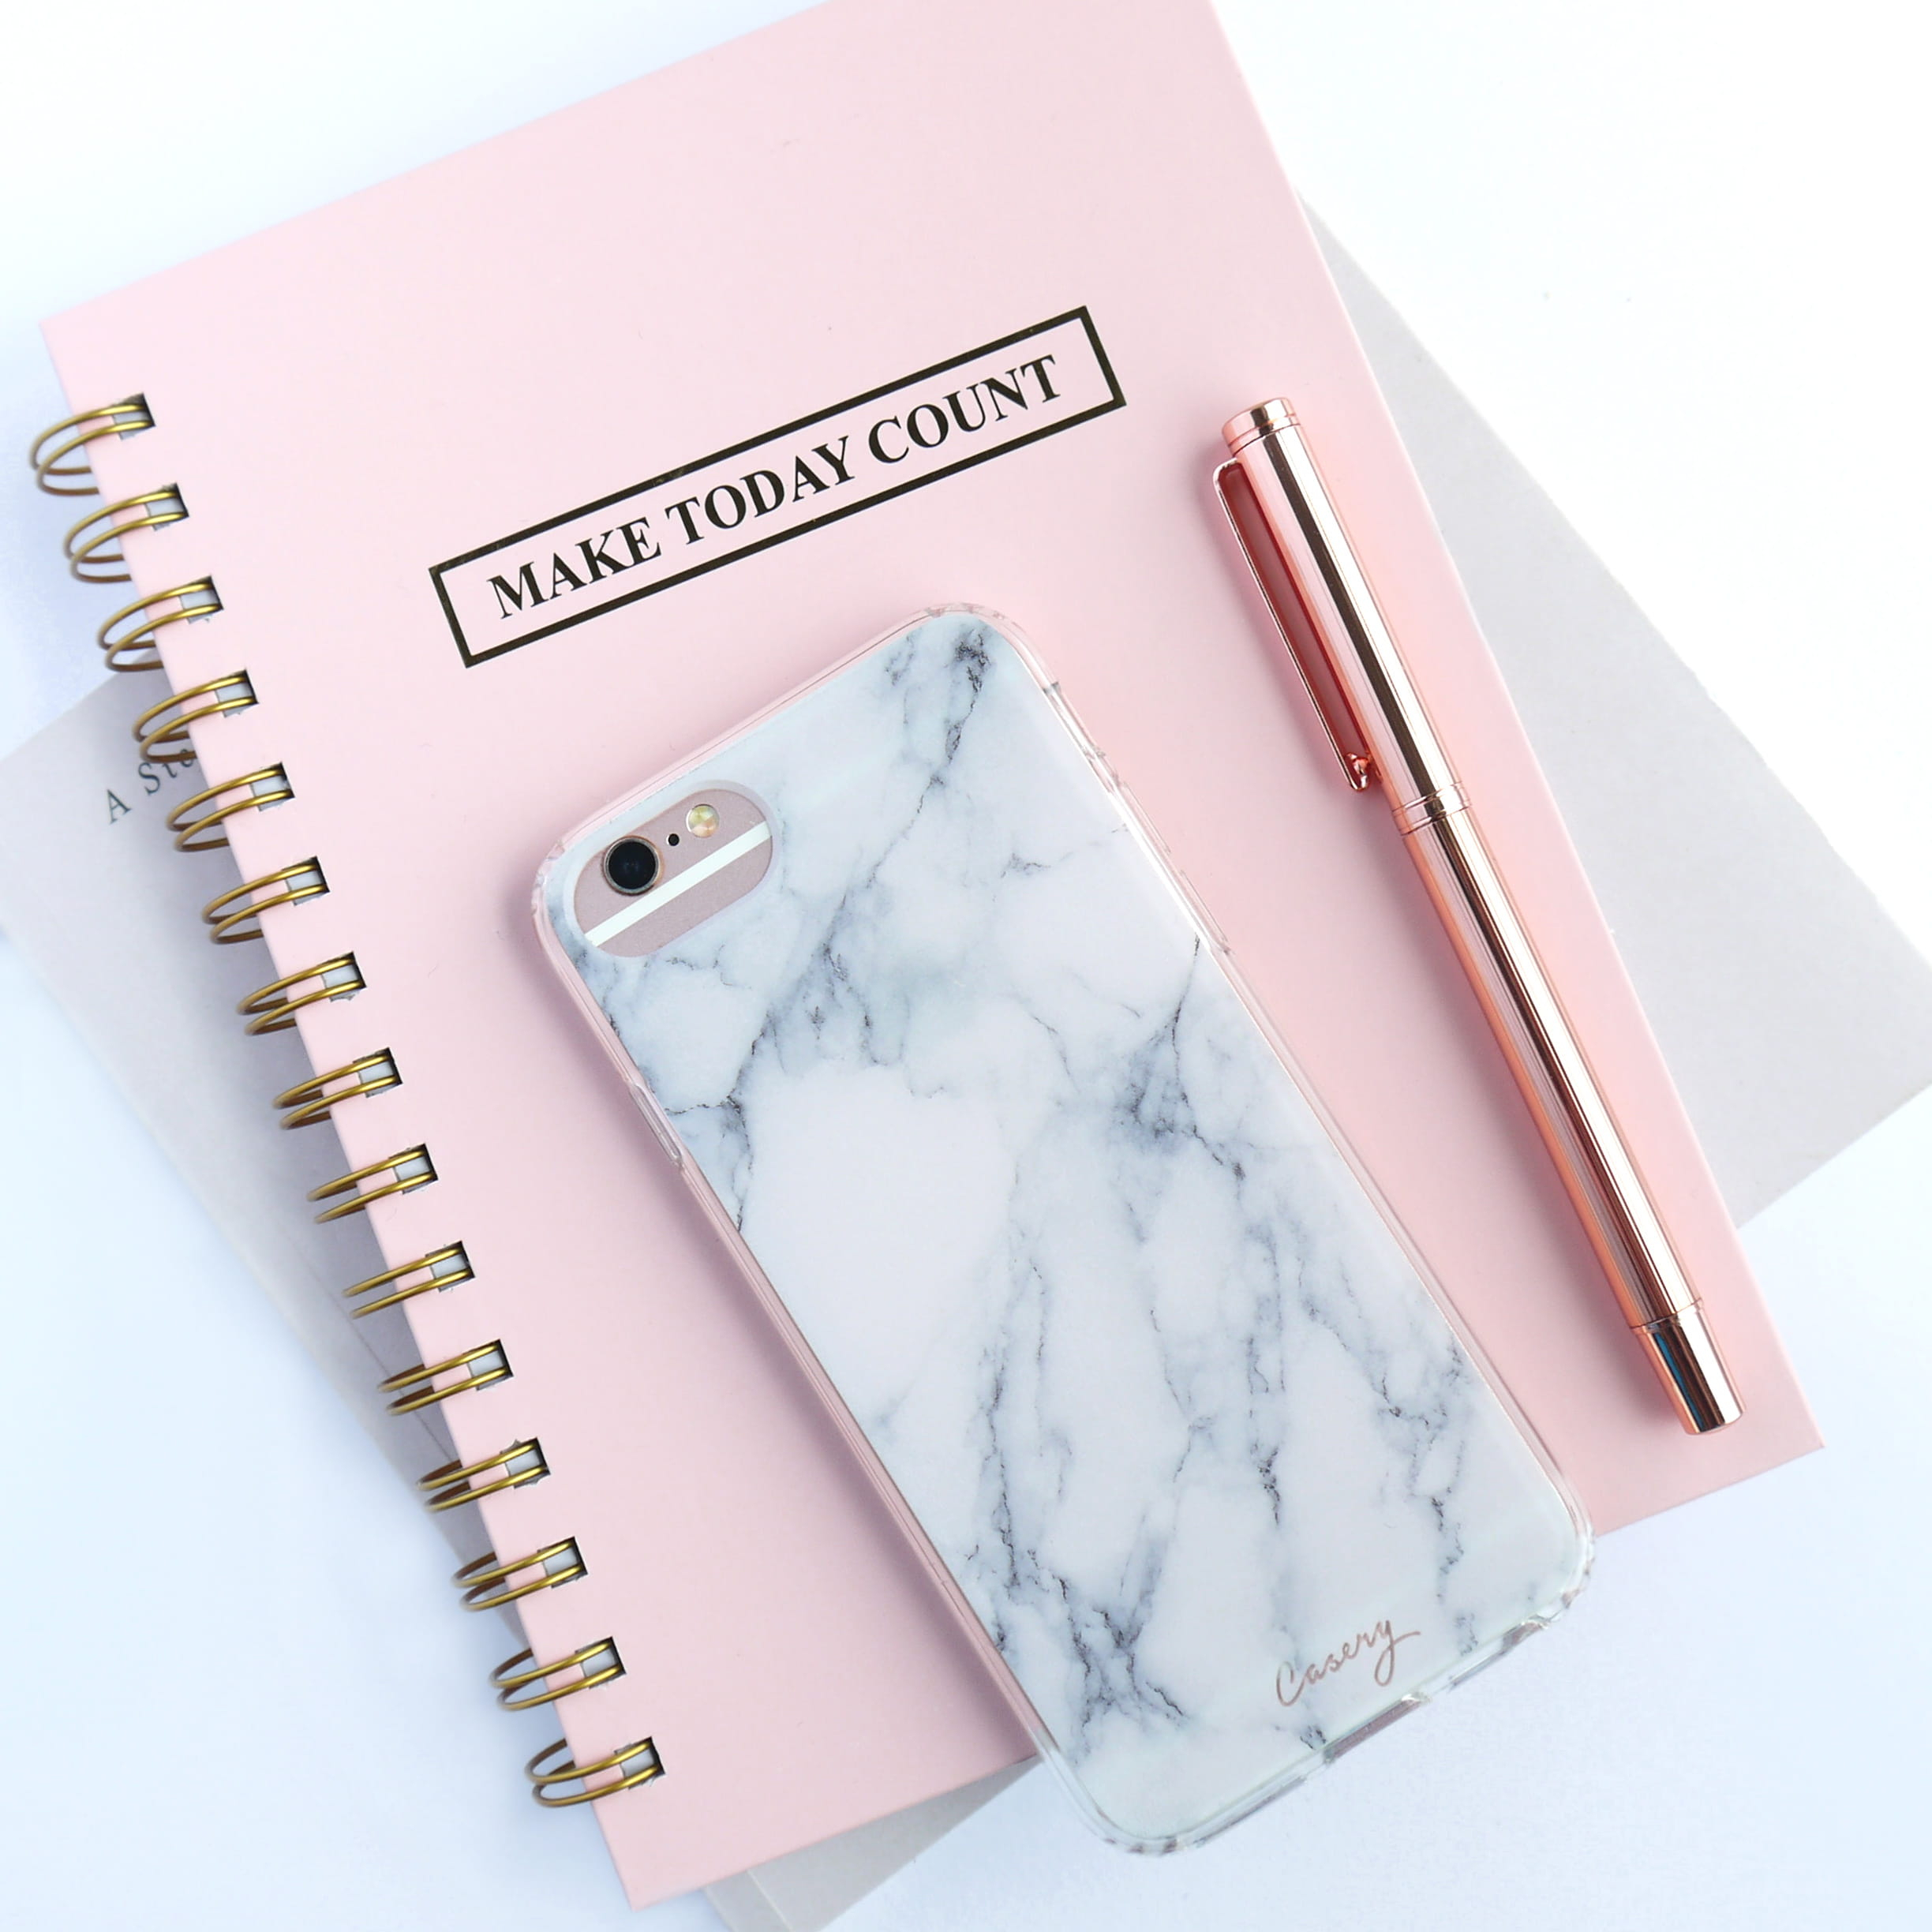 bowwo rose gold iphone 6s and white and gray